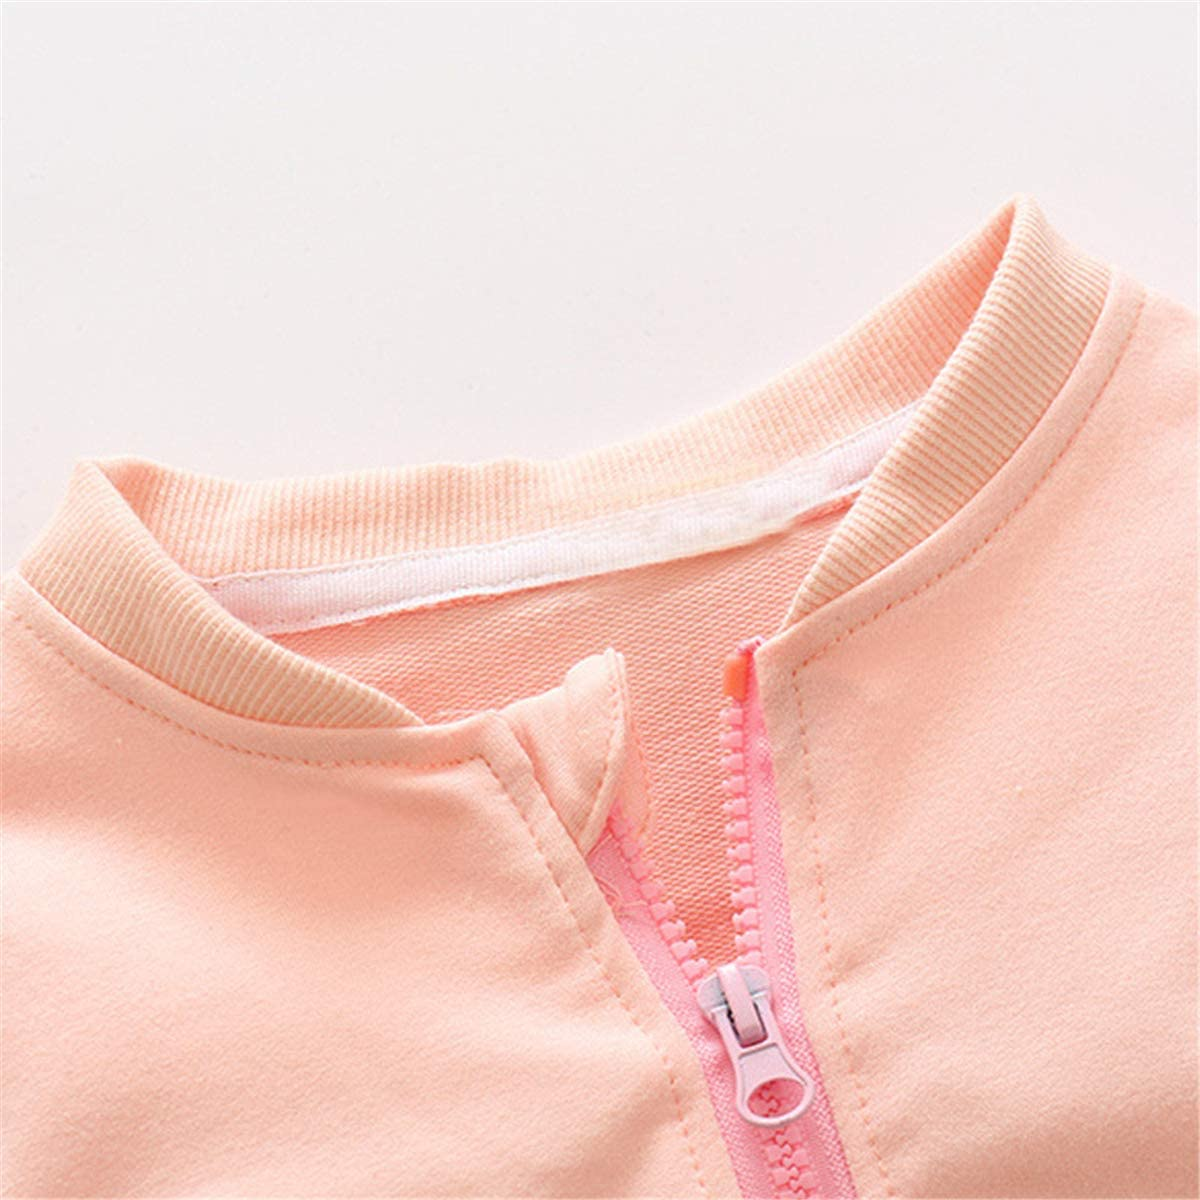 Ameyda Toddler Babies Sweatsuit Outfit